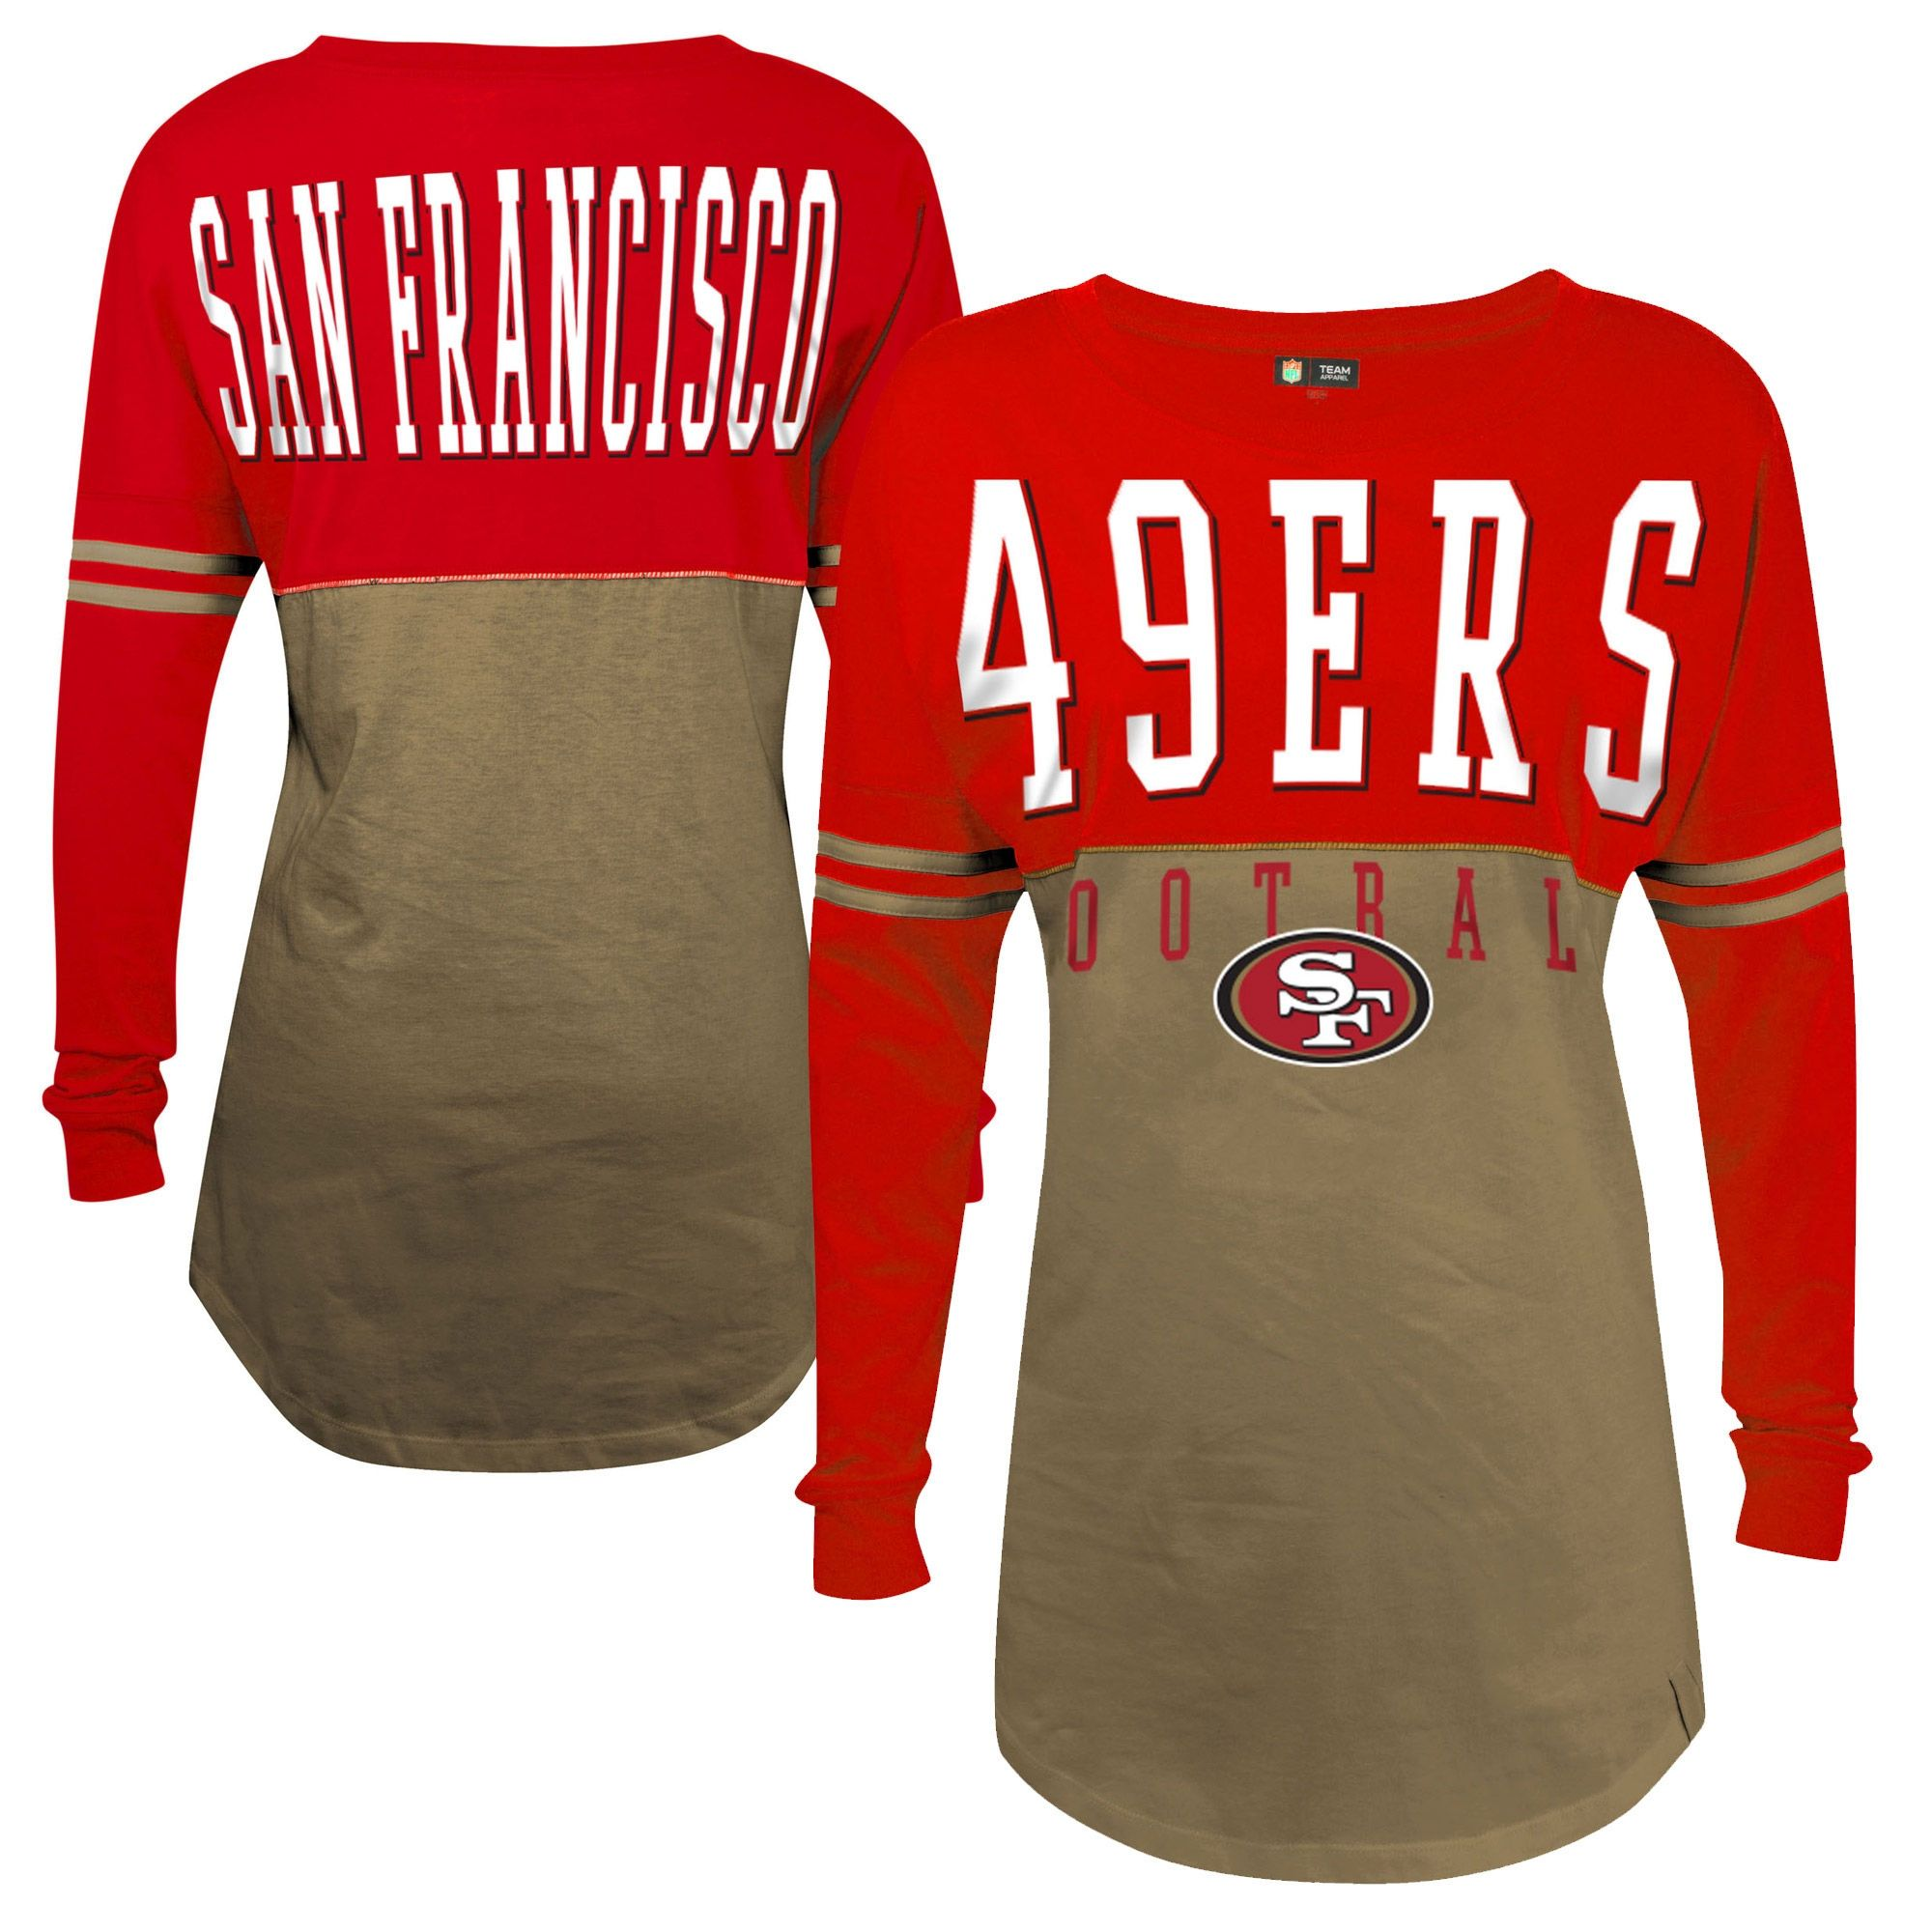 San Francisco 49ers 5th   Ocean by New Era Women s Baby Jersey Spirit Top  Long Sleeve T-Shirt - Gold 3091162d9c251